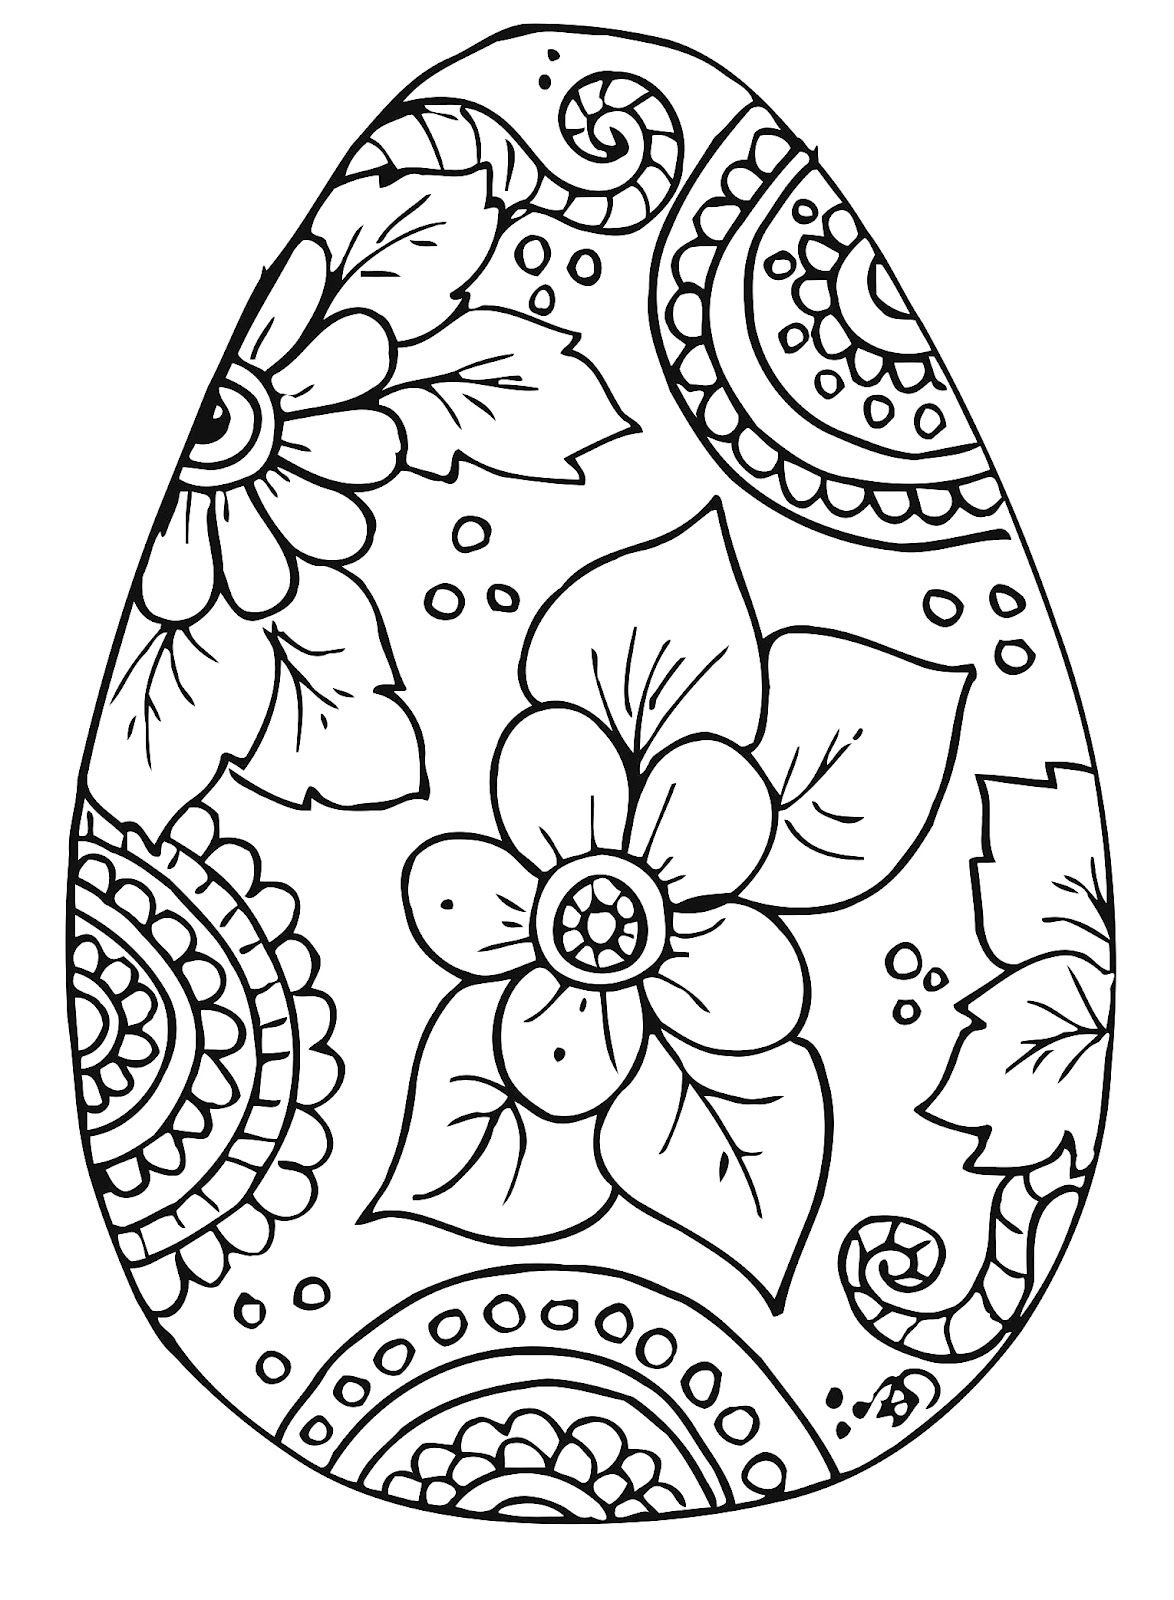 10 Cool Free Printable Easter Coloring Pages For Kids Who've Moved - Easter Color Pages Free Printable